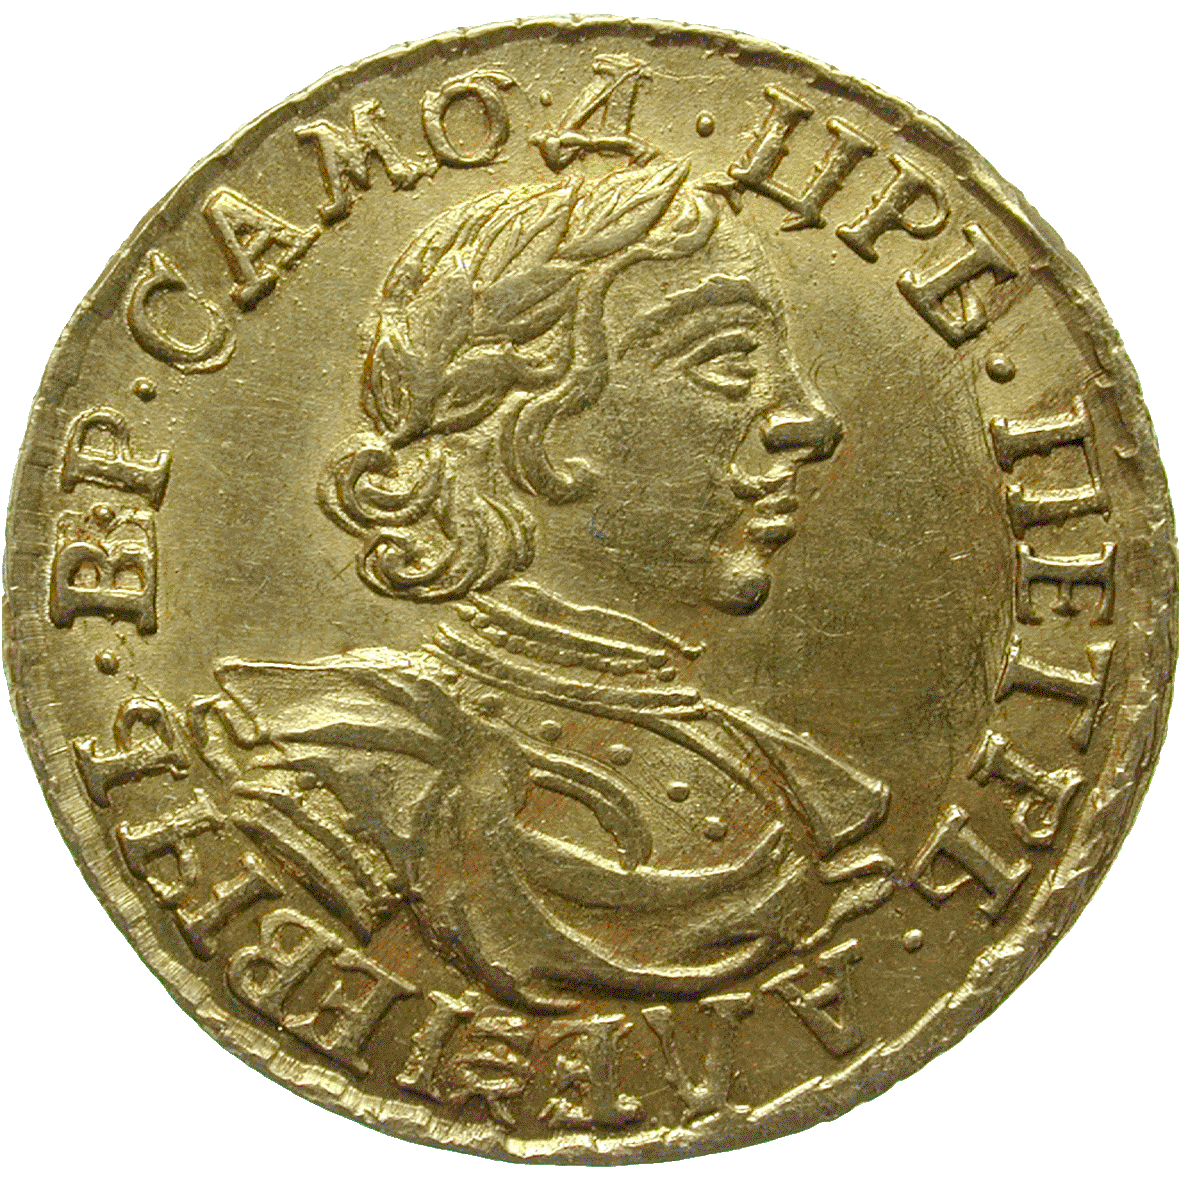 Russian Empire, Peter I the Great, Double Ruble 1718 (obverse)